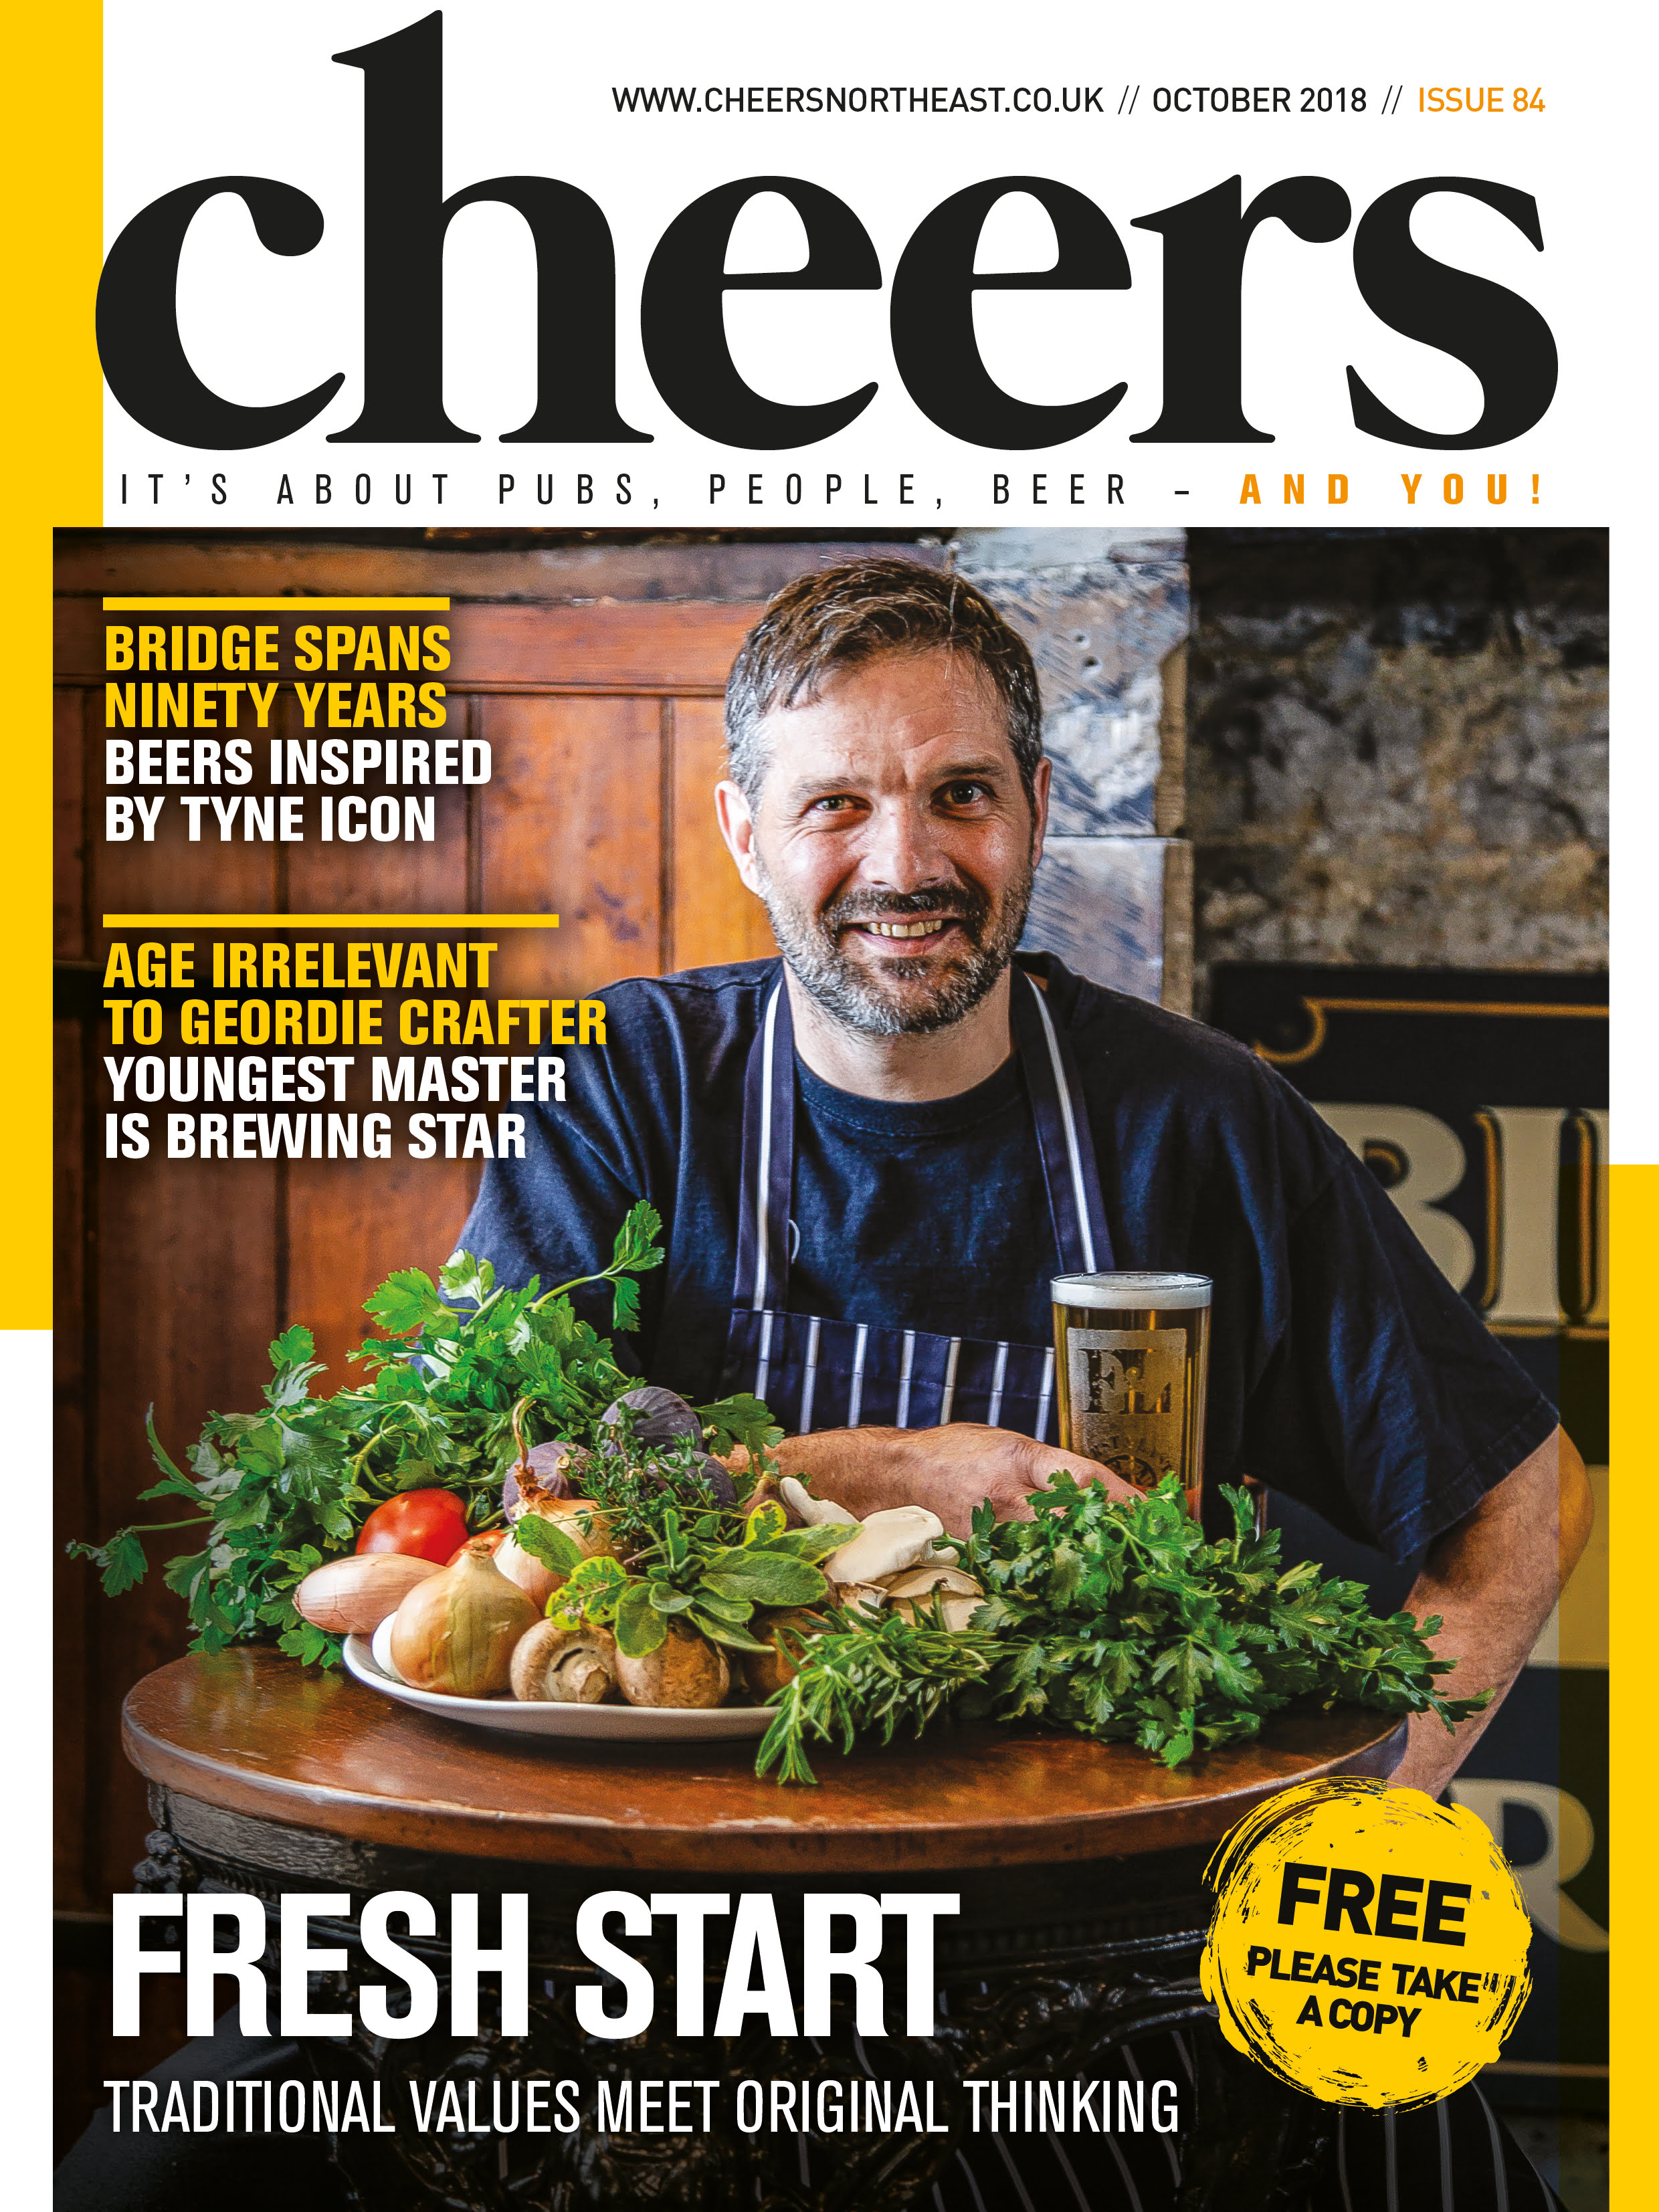 Cheers issue 84